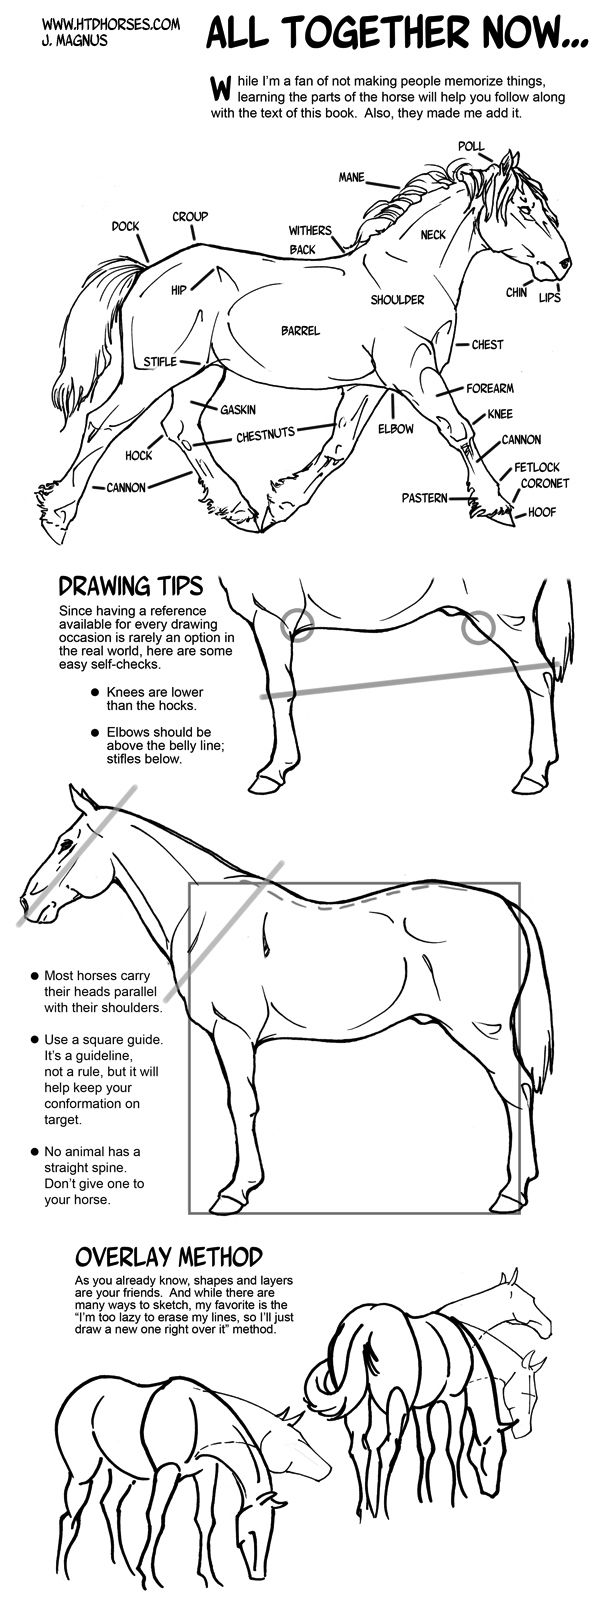 Horse Anatomy Part Iii All Together Now By Sketcherjak On